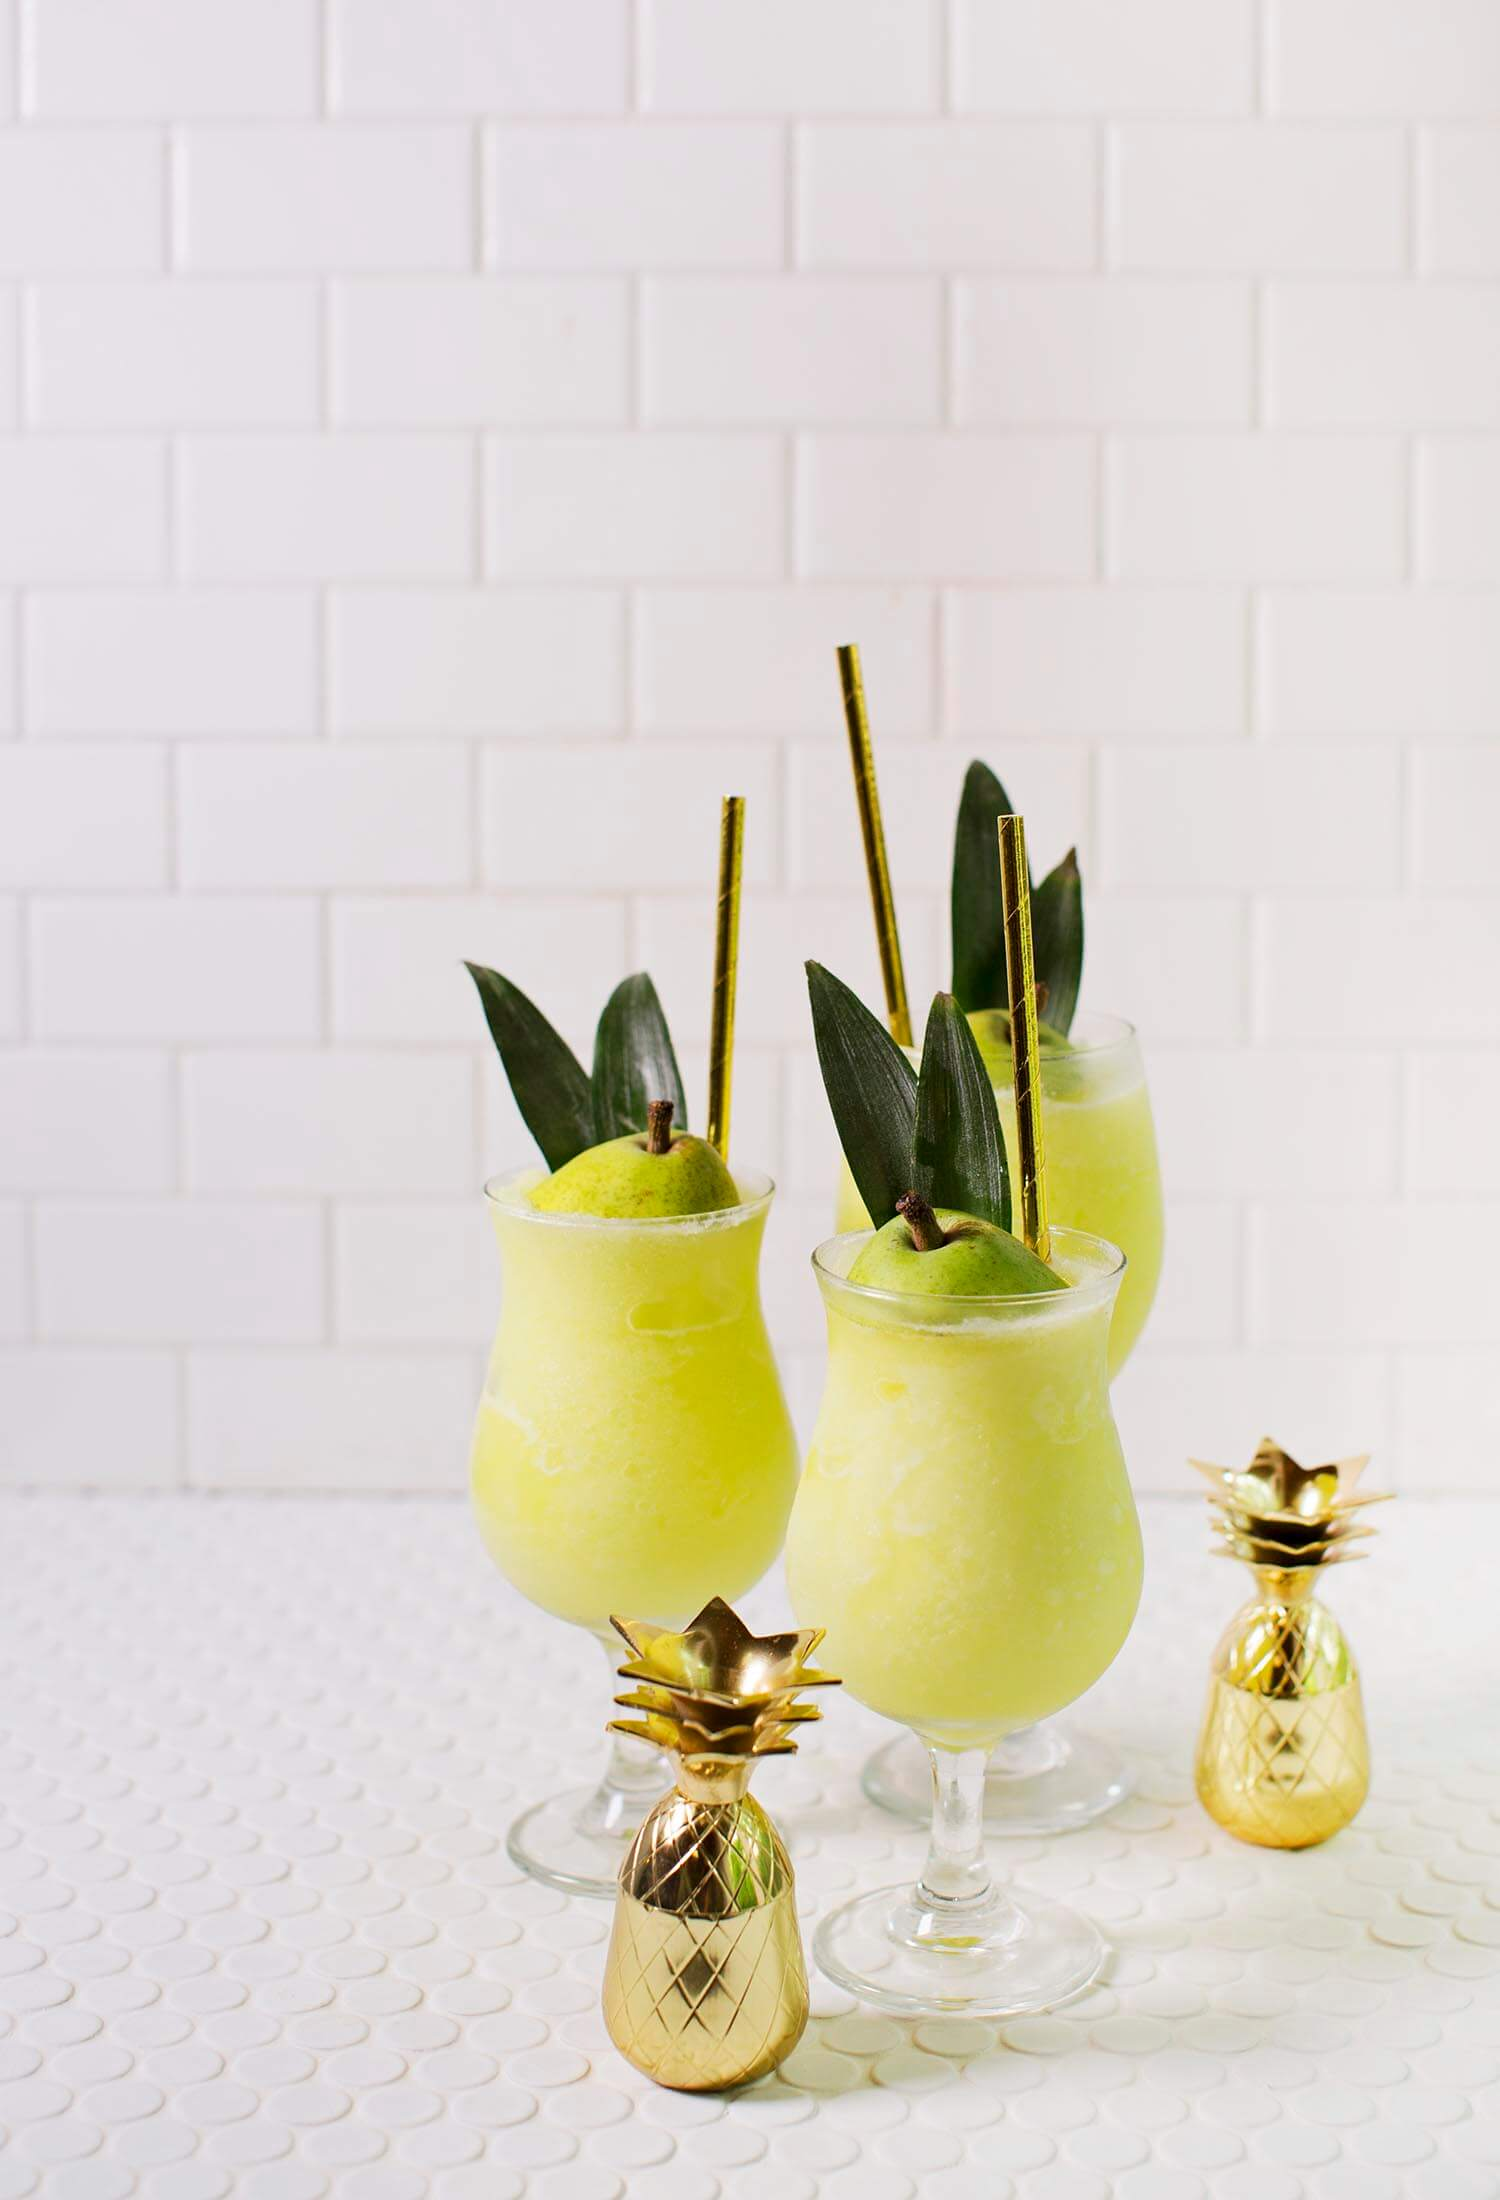 Green Apple and Pear Chi Chi